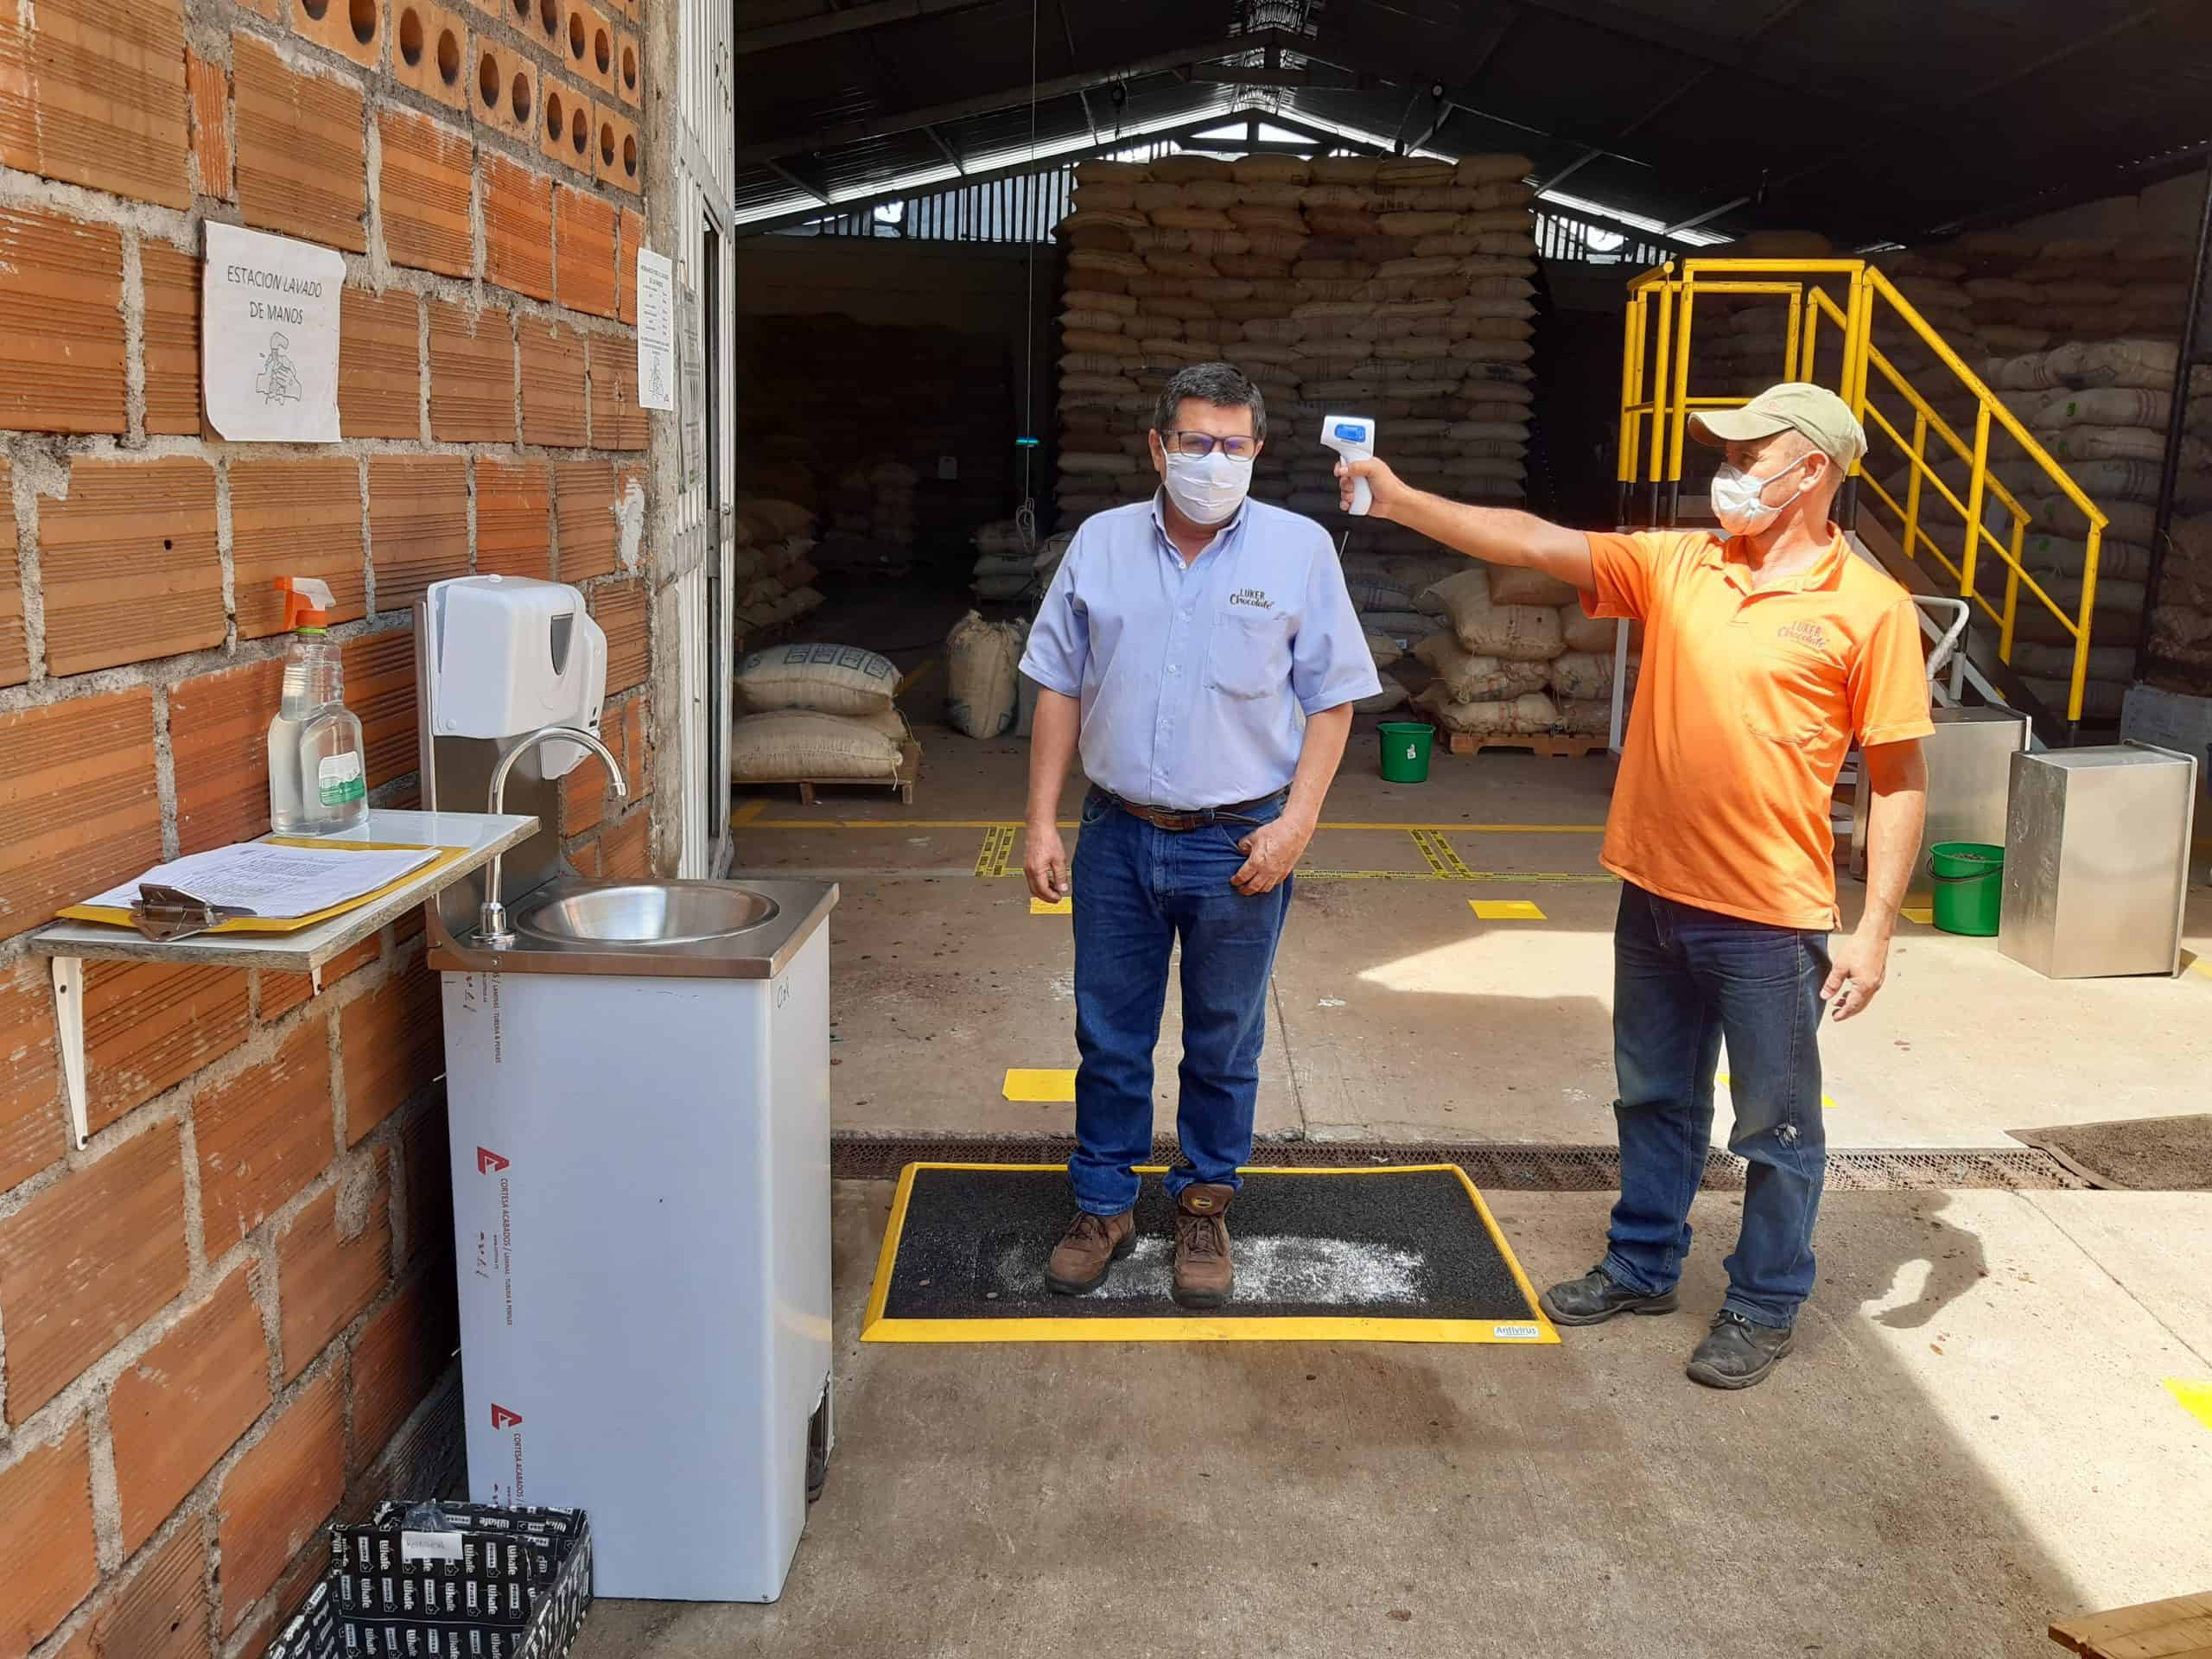 Sustainable cocoa production facility temperature testing in Colombia